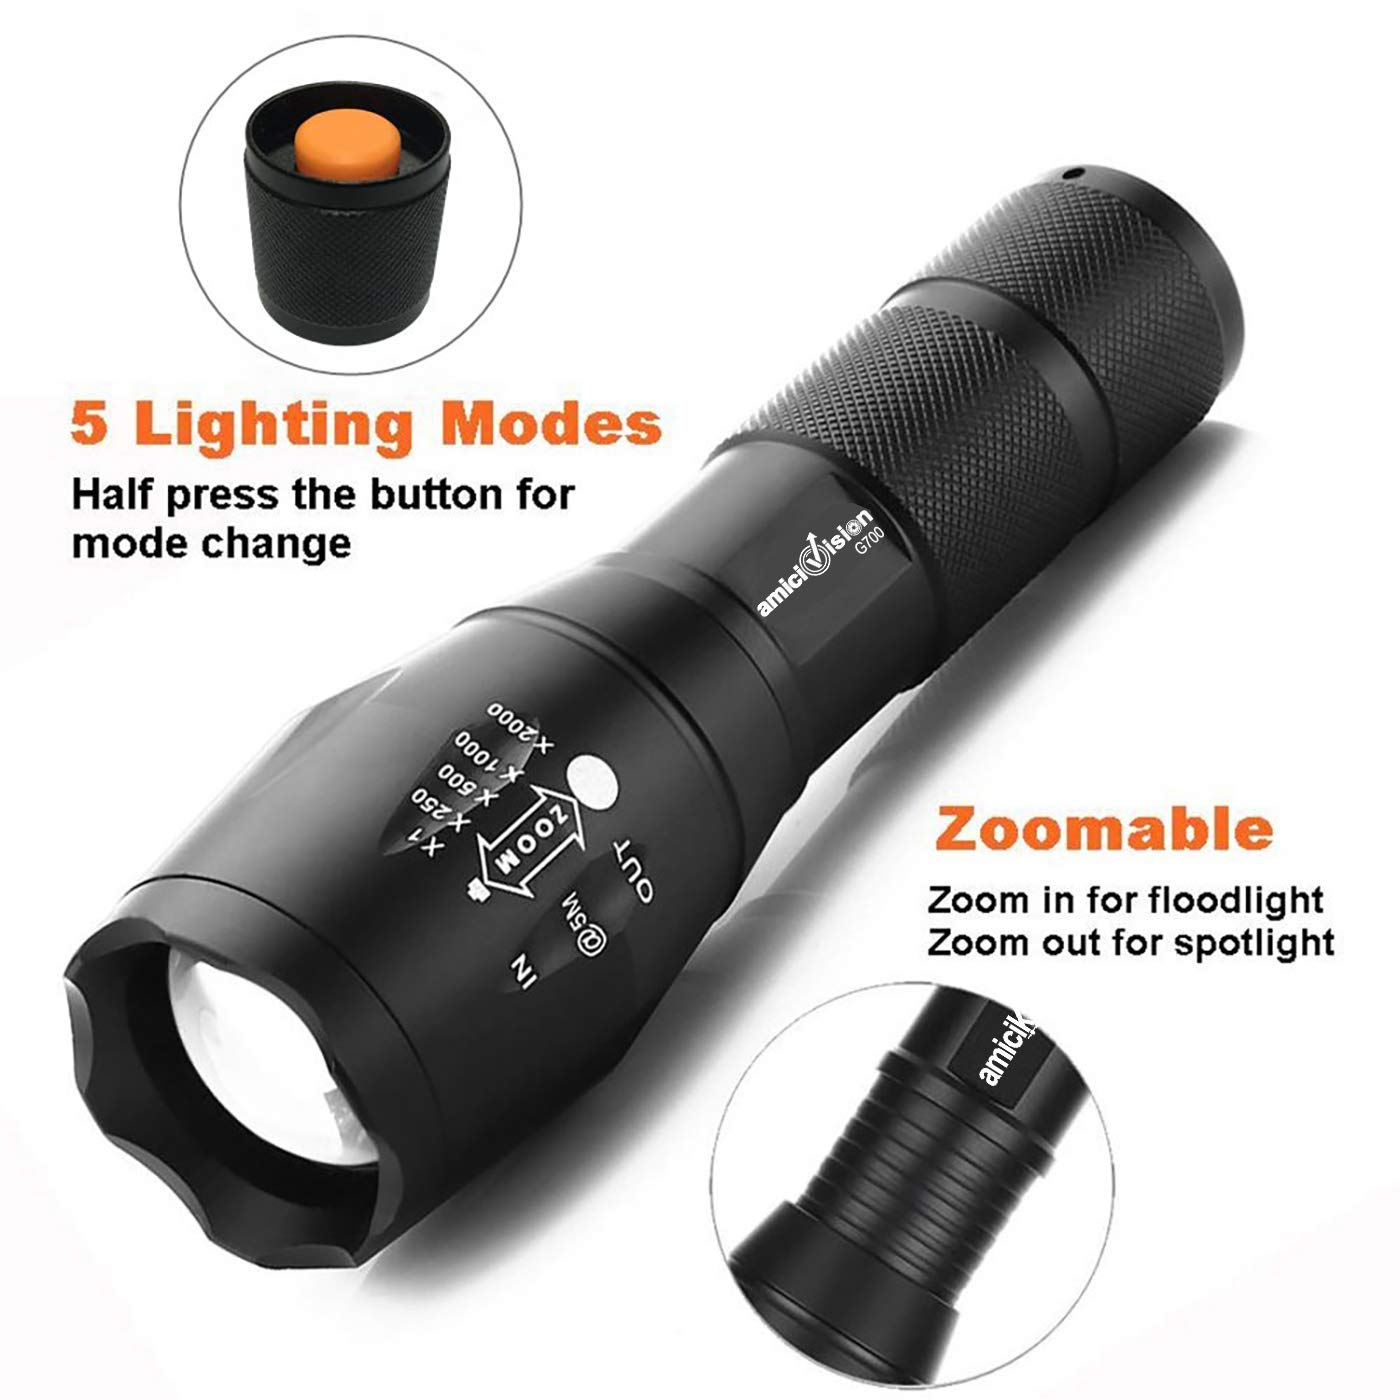 Amicivision Metal LED Torch Flashlight 2000 Lumens, XML T6 and 18650 Rechargeable Battery with Smart Battery Charger